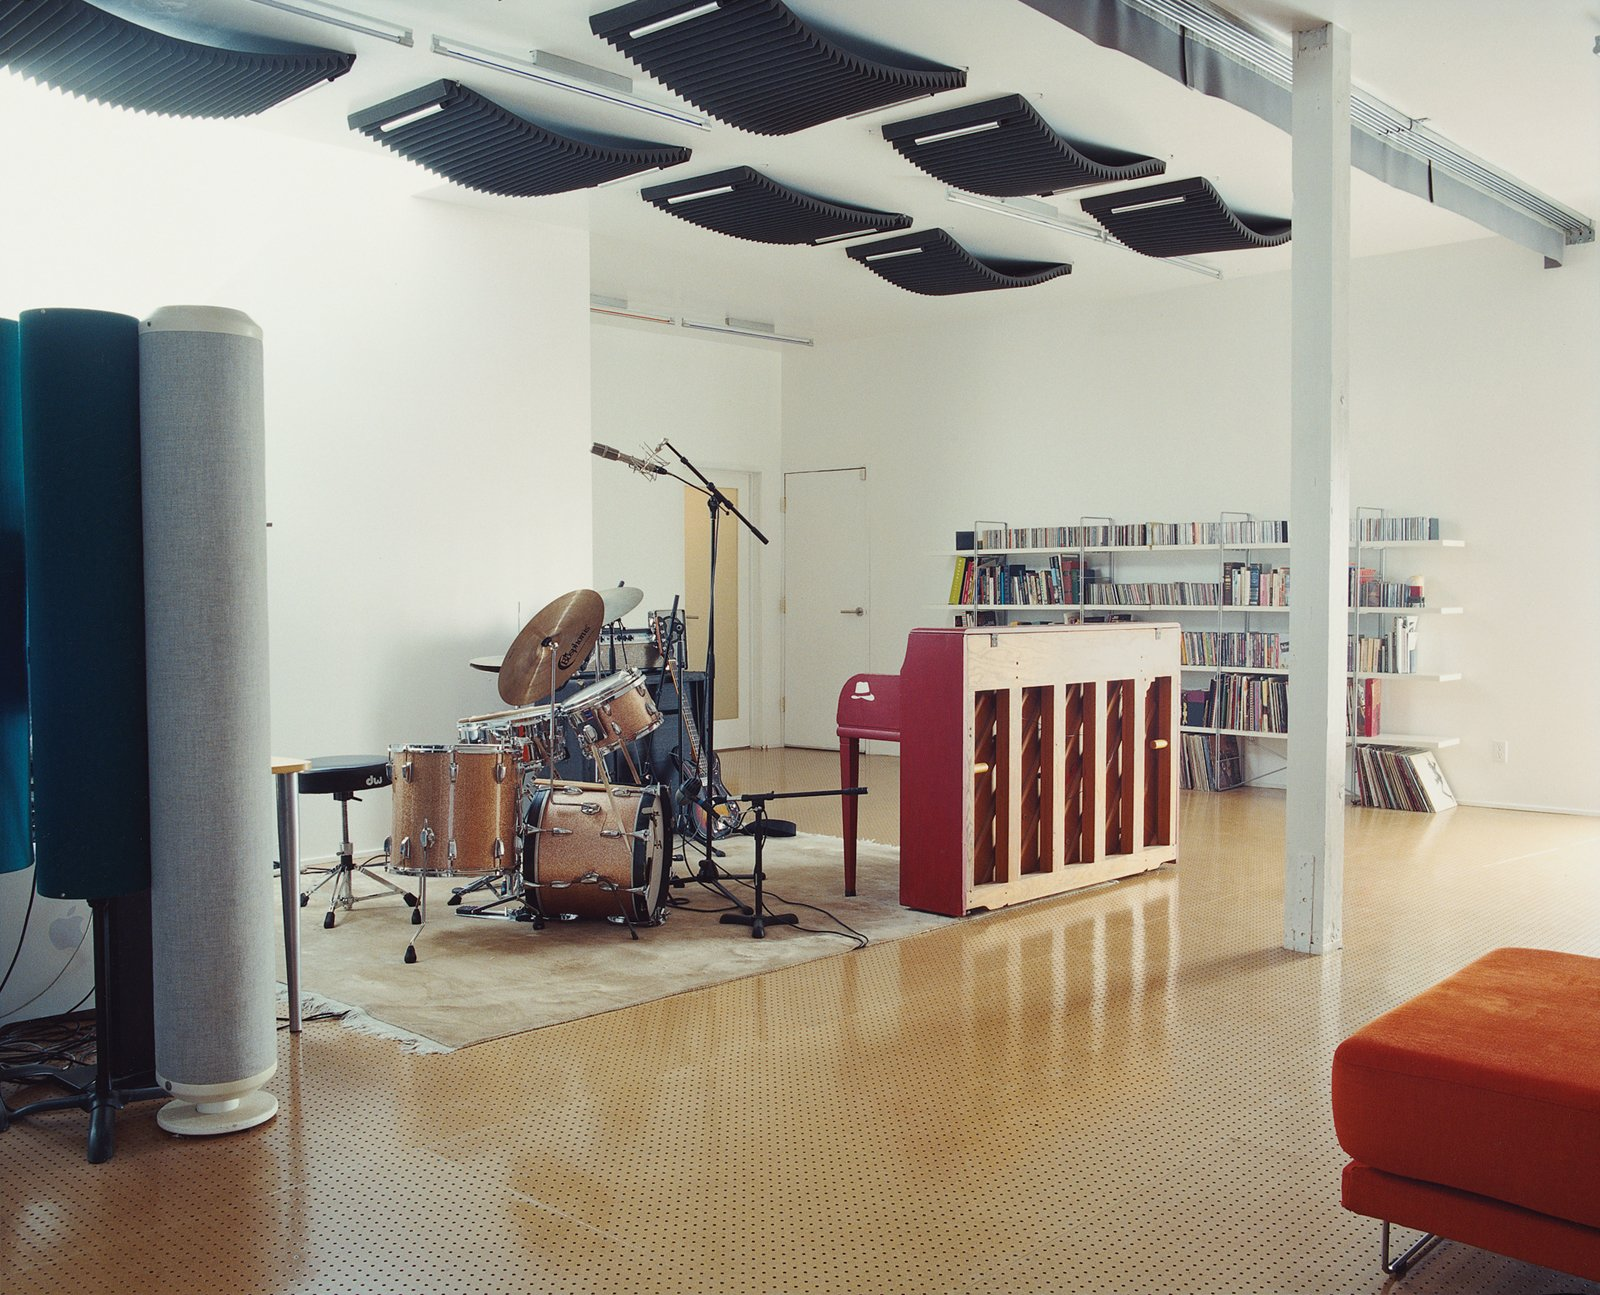 Brill's practice area features a '50s Wurlitzer piano and a mid-'60s Ludwig drum kit. For acoustics, the architect insulated the walls with two layers of Sheetrock stuffed with denim insulation. The floor is made of pegboard—an unusual, albeit cost-effective, material choice.